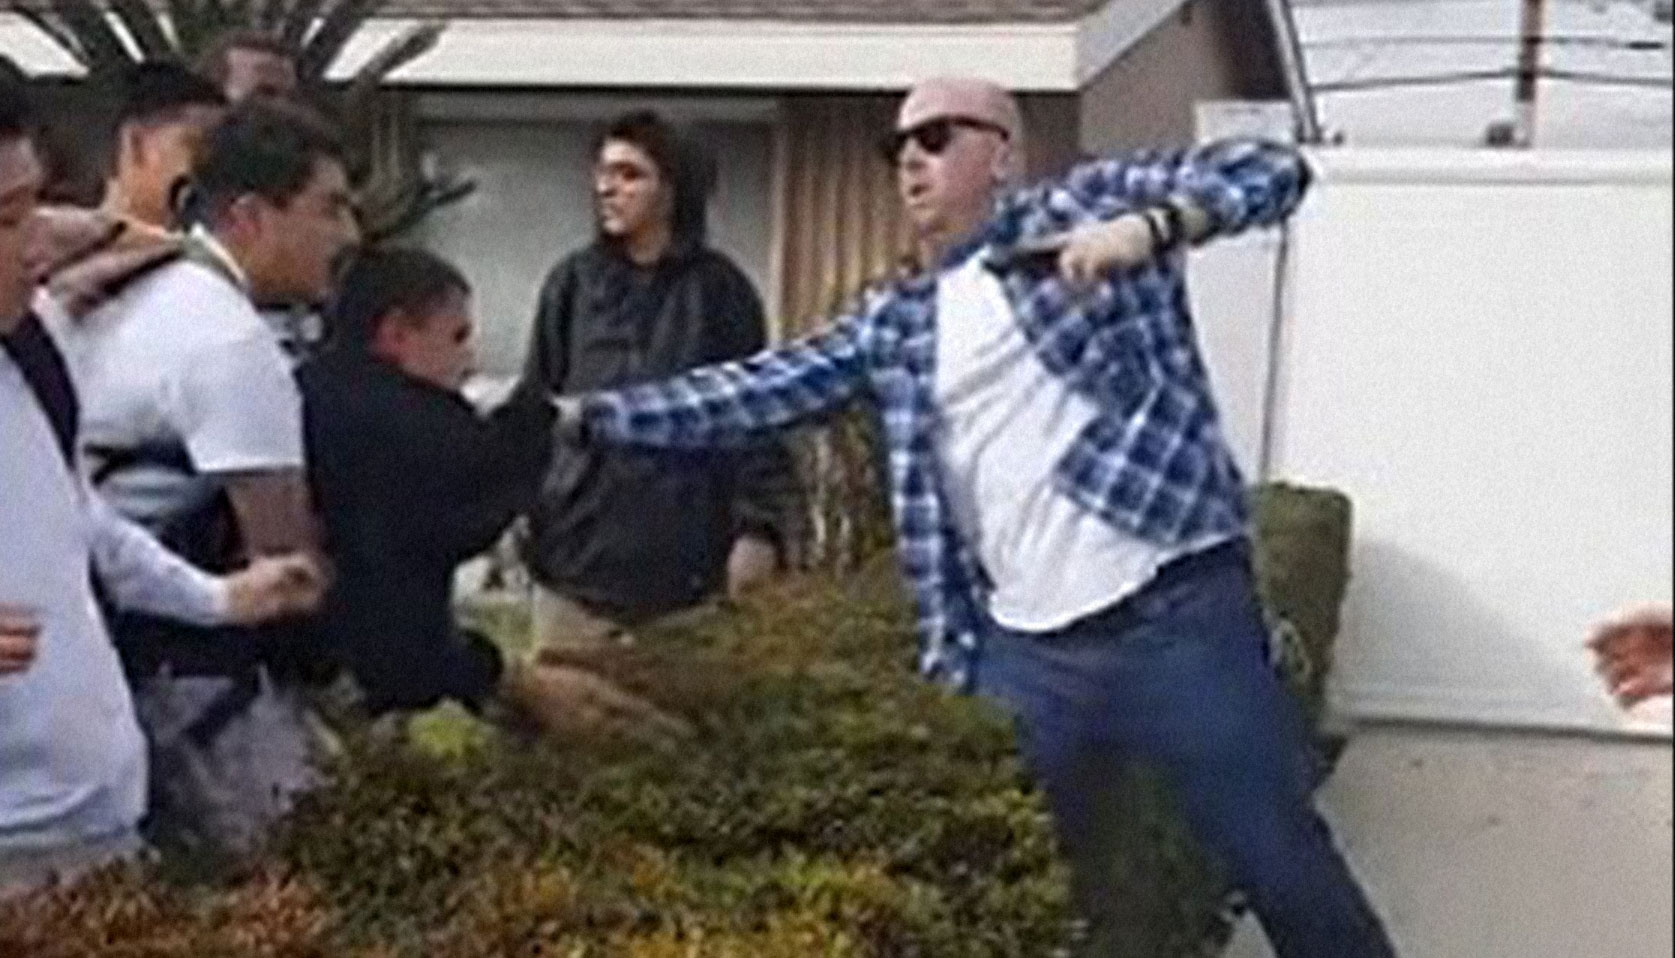 off duty cop drags kid into his yard draws and fires gun boing